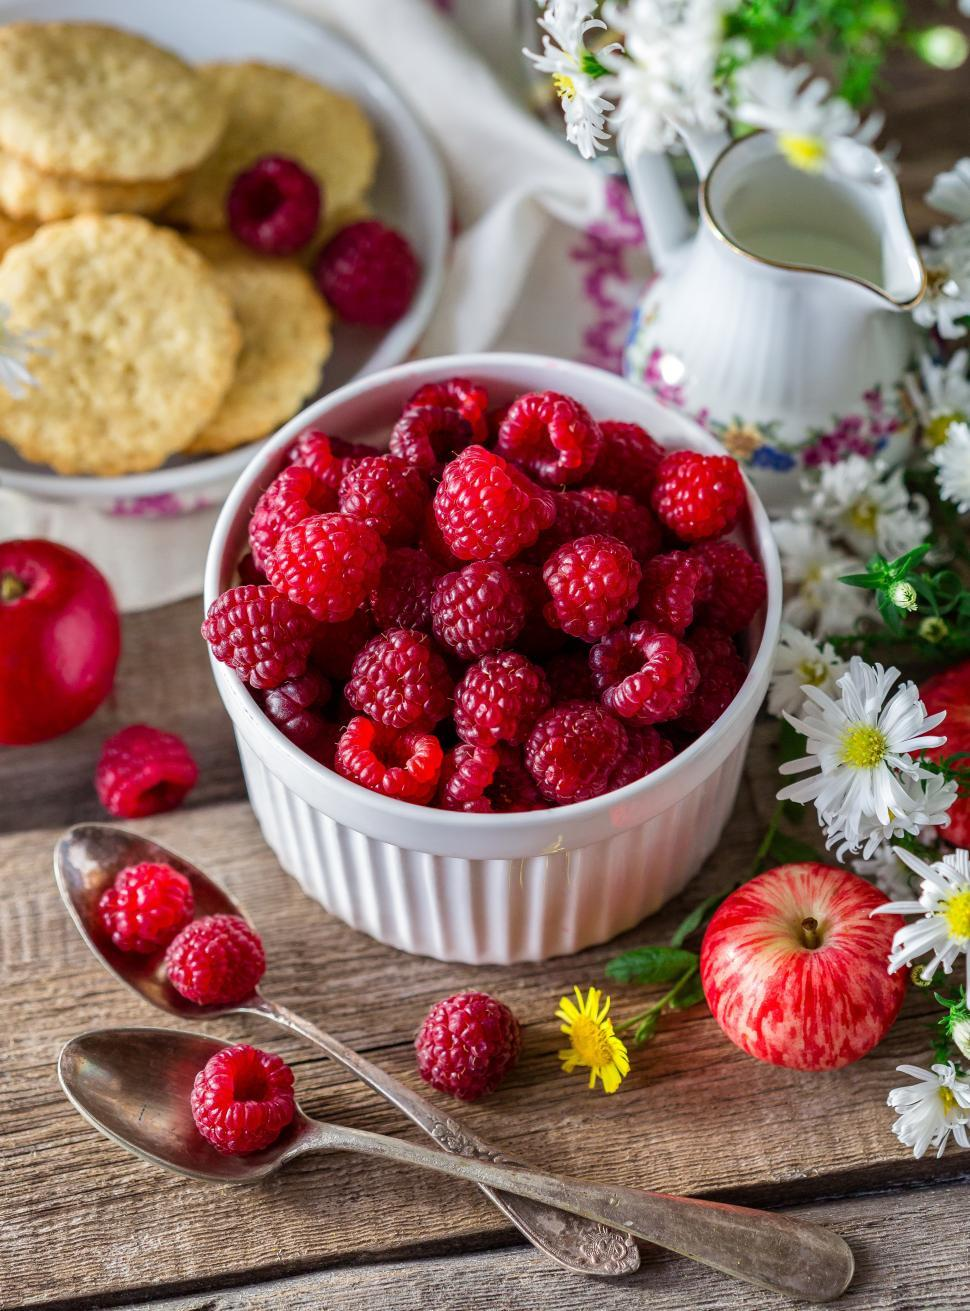 Download Free Stock HD Photo of Close up of a bowl of raspberries on a table Online